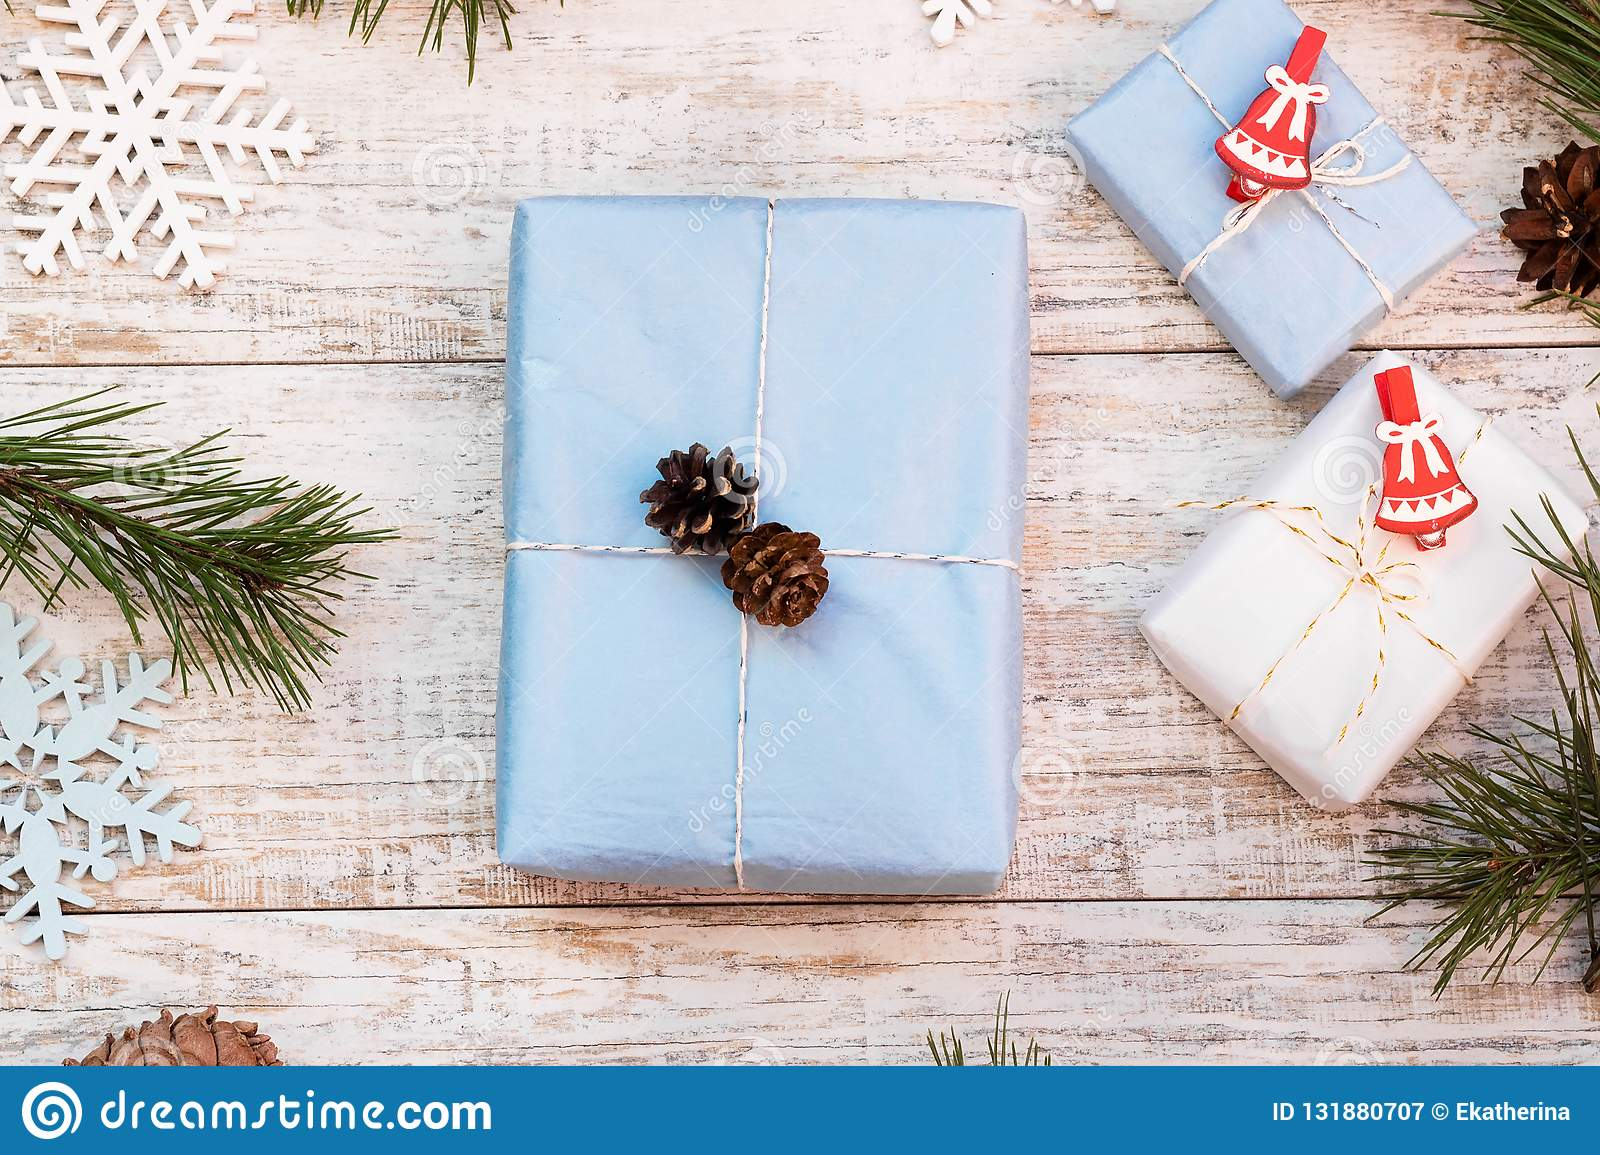 Christmas Top View.Layout Of Christmas Gifts Top View Stock Image Image Of